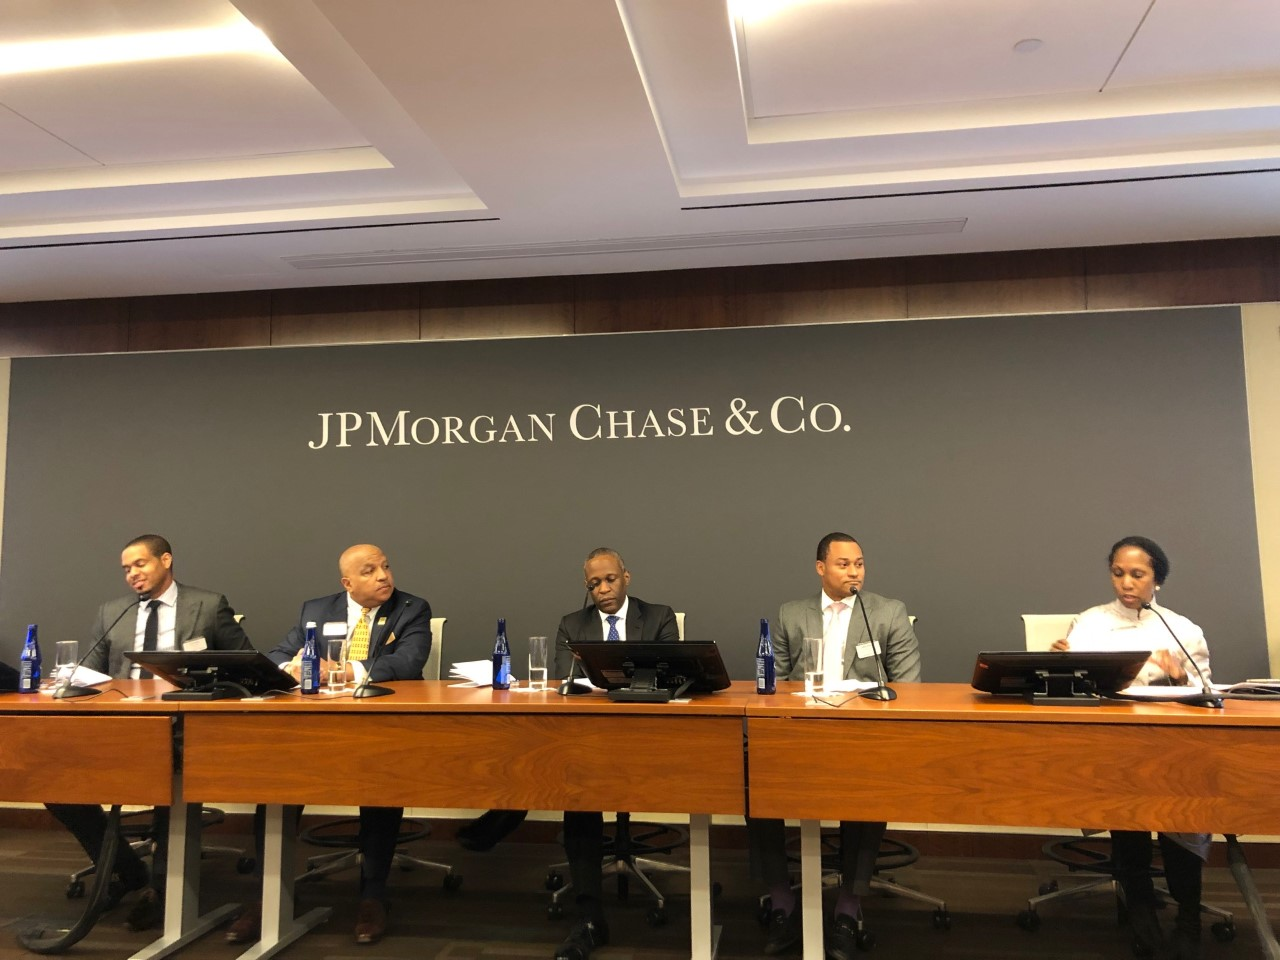 2019 Reflect & inspire, hosted by JPMorgan chase & co.